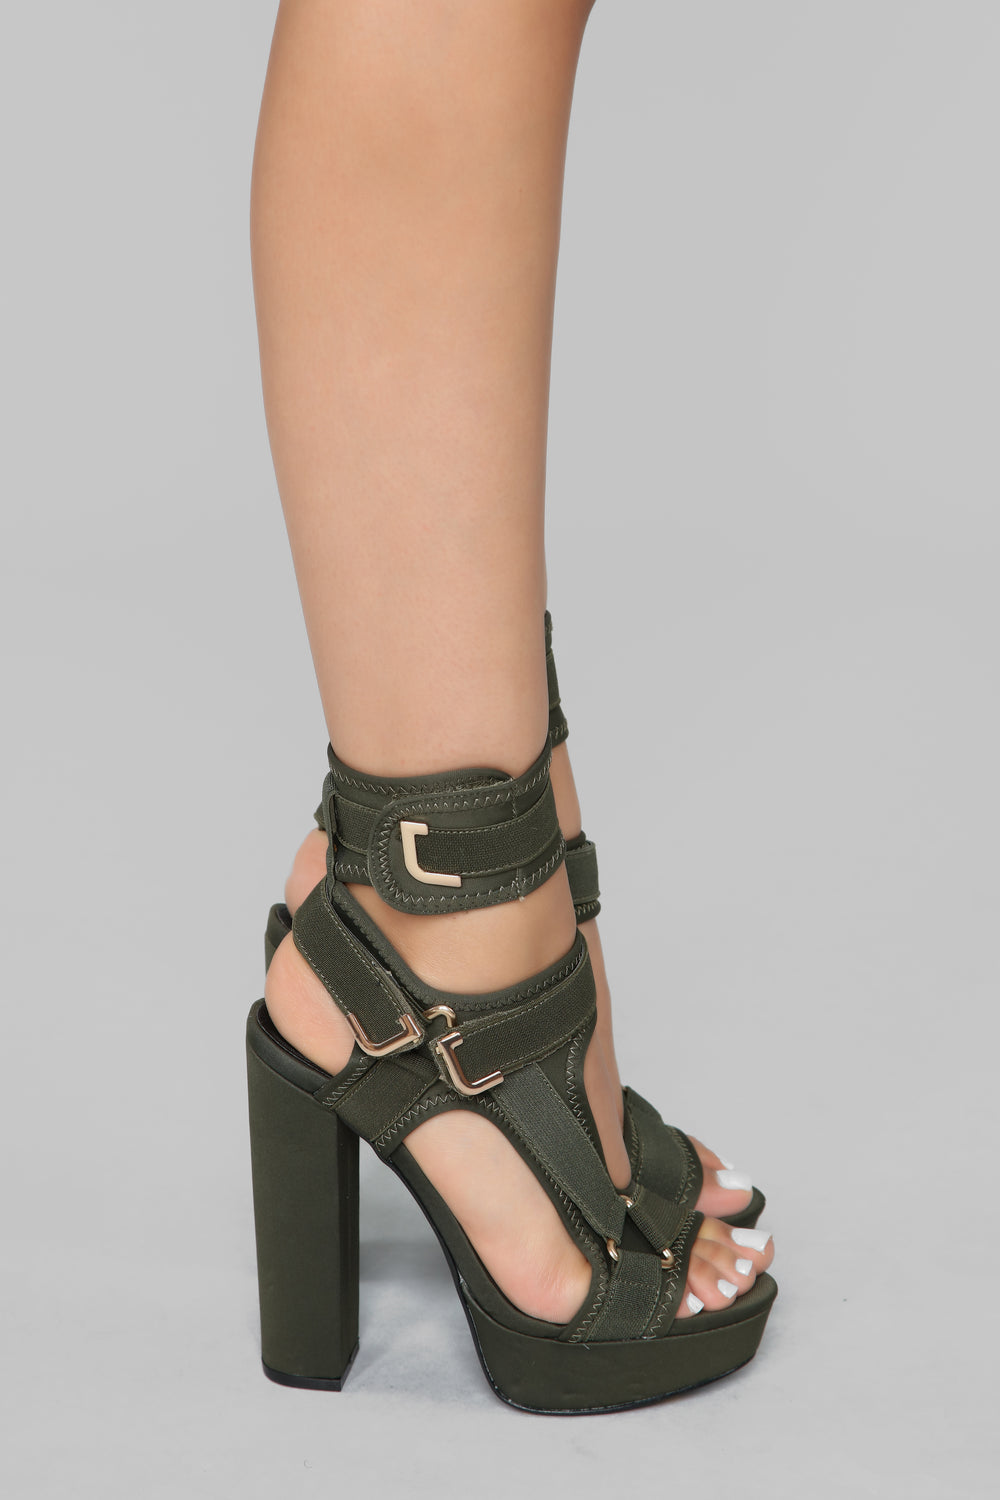 Head In The Clouds Platform Heel - Olive